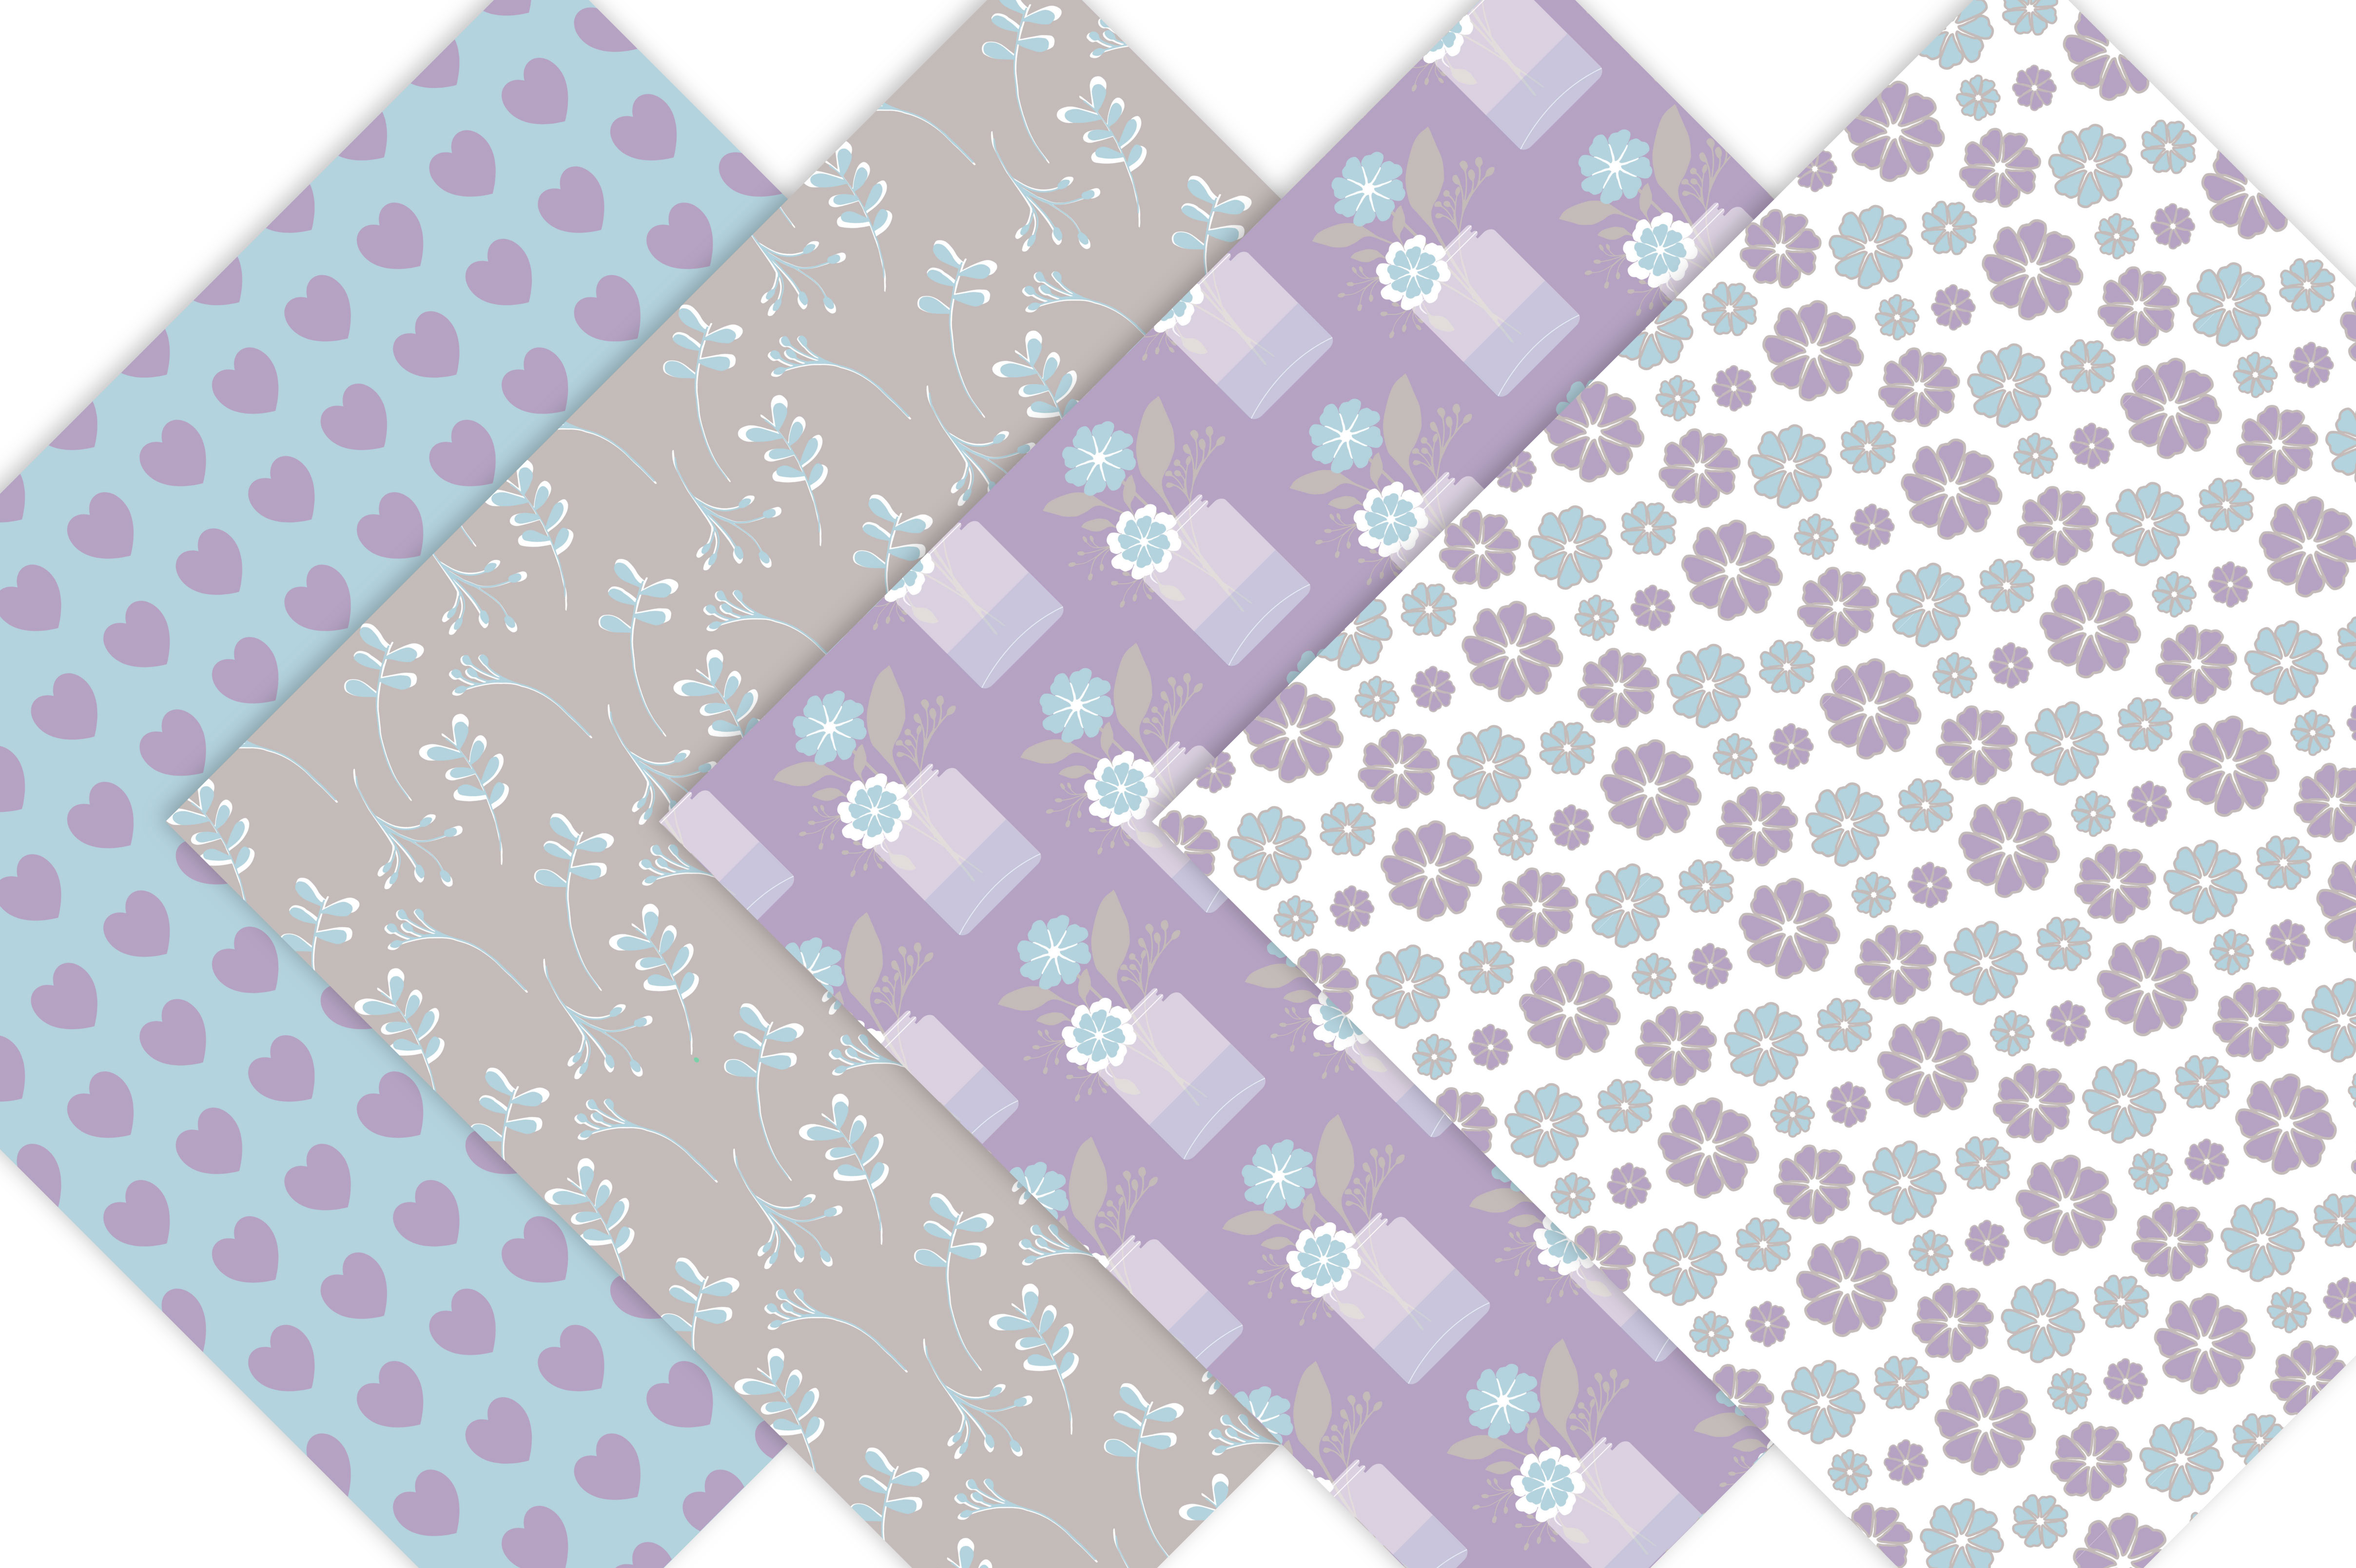 Floral Digital Paper Pack in Lavender, lilac, purple example image 6